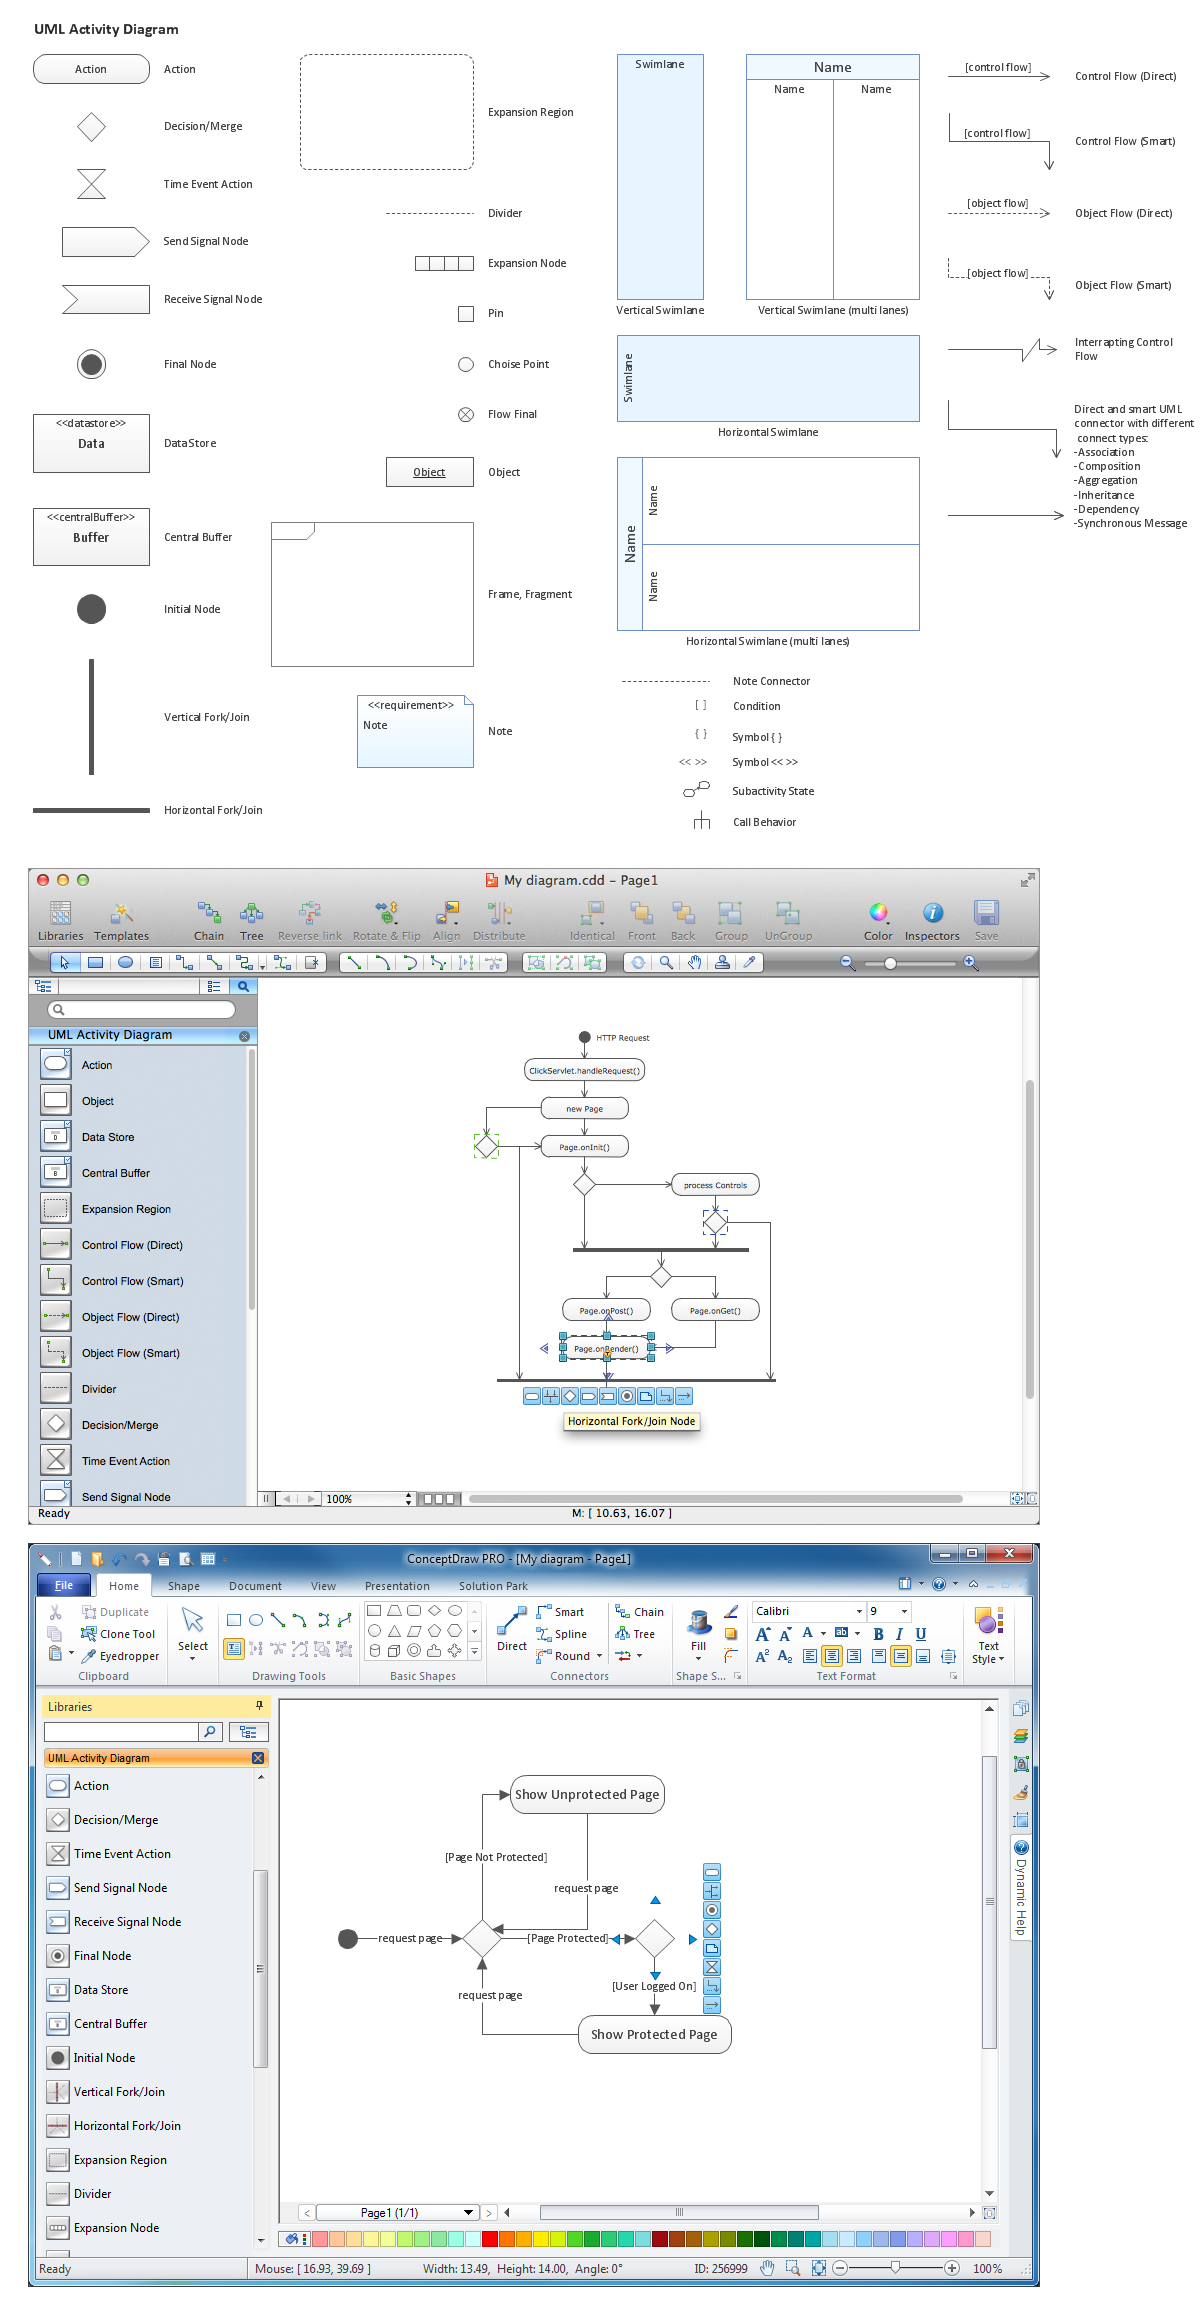 Diagramming Software for Design UML Activity Diagrams *